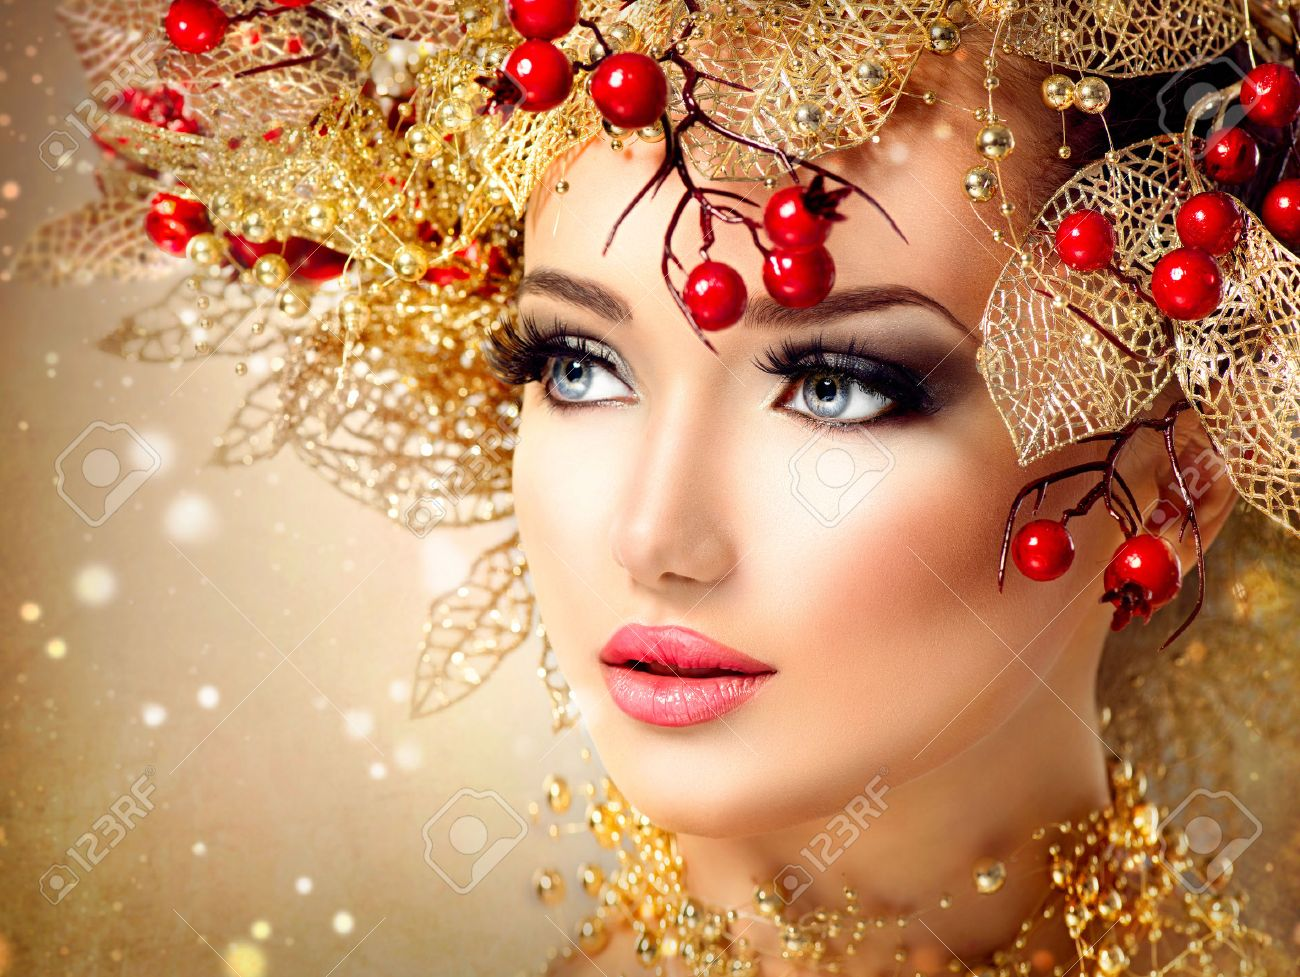 Stunning Hairstyle And Makeup Images - Style and Ideas - rewordio.us